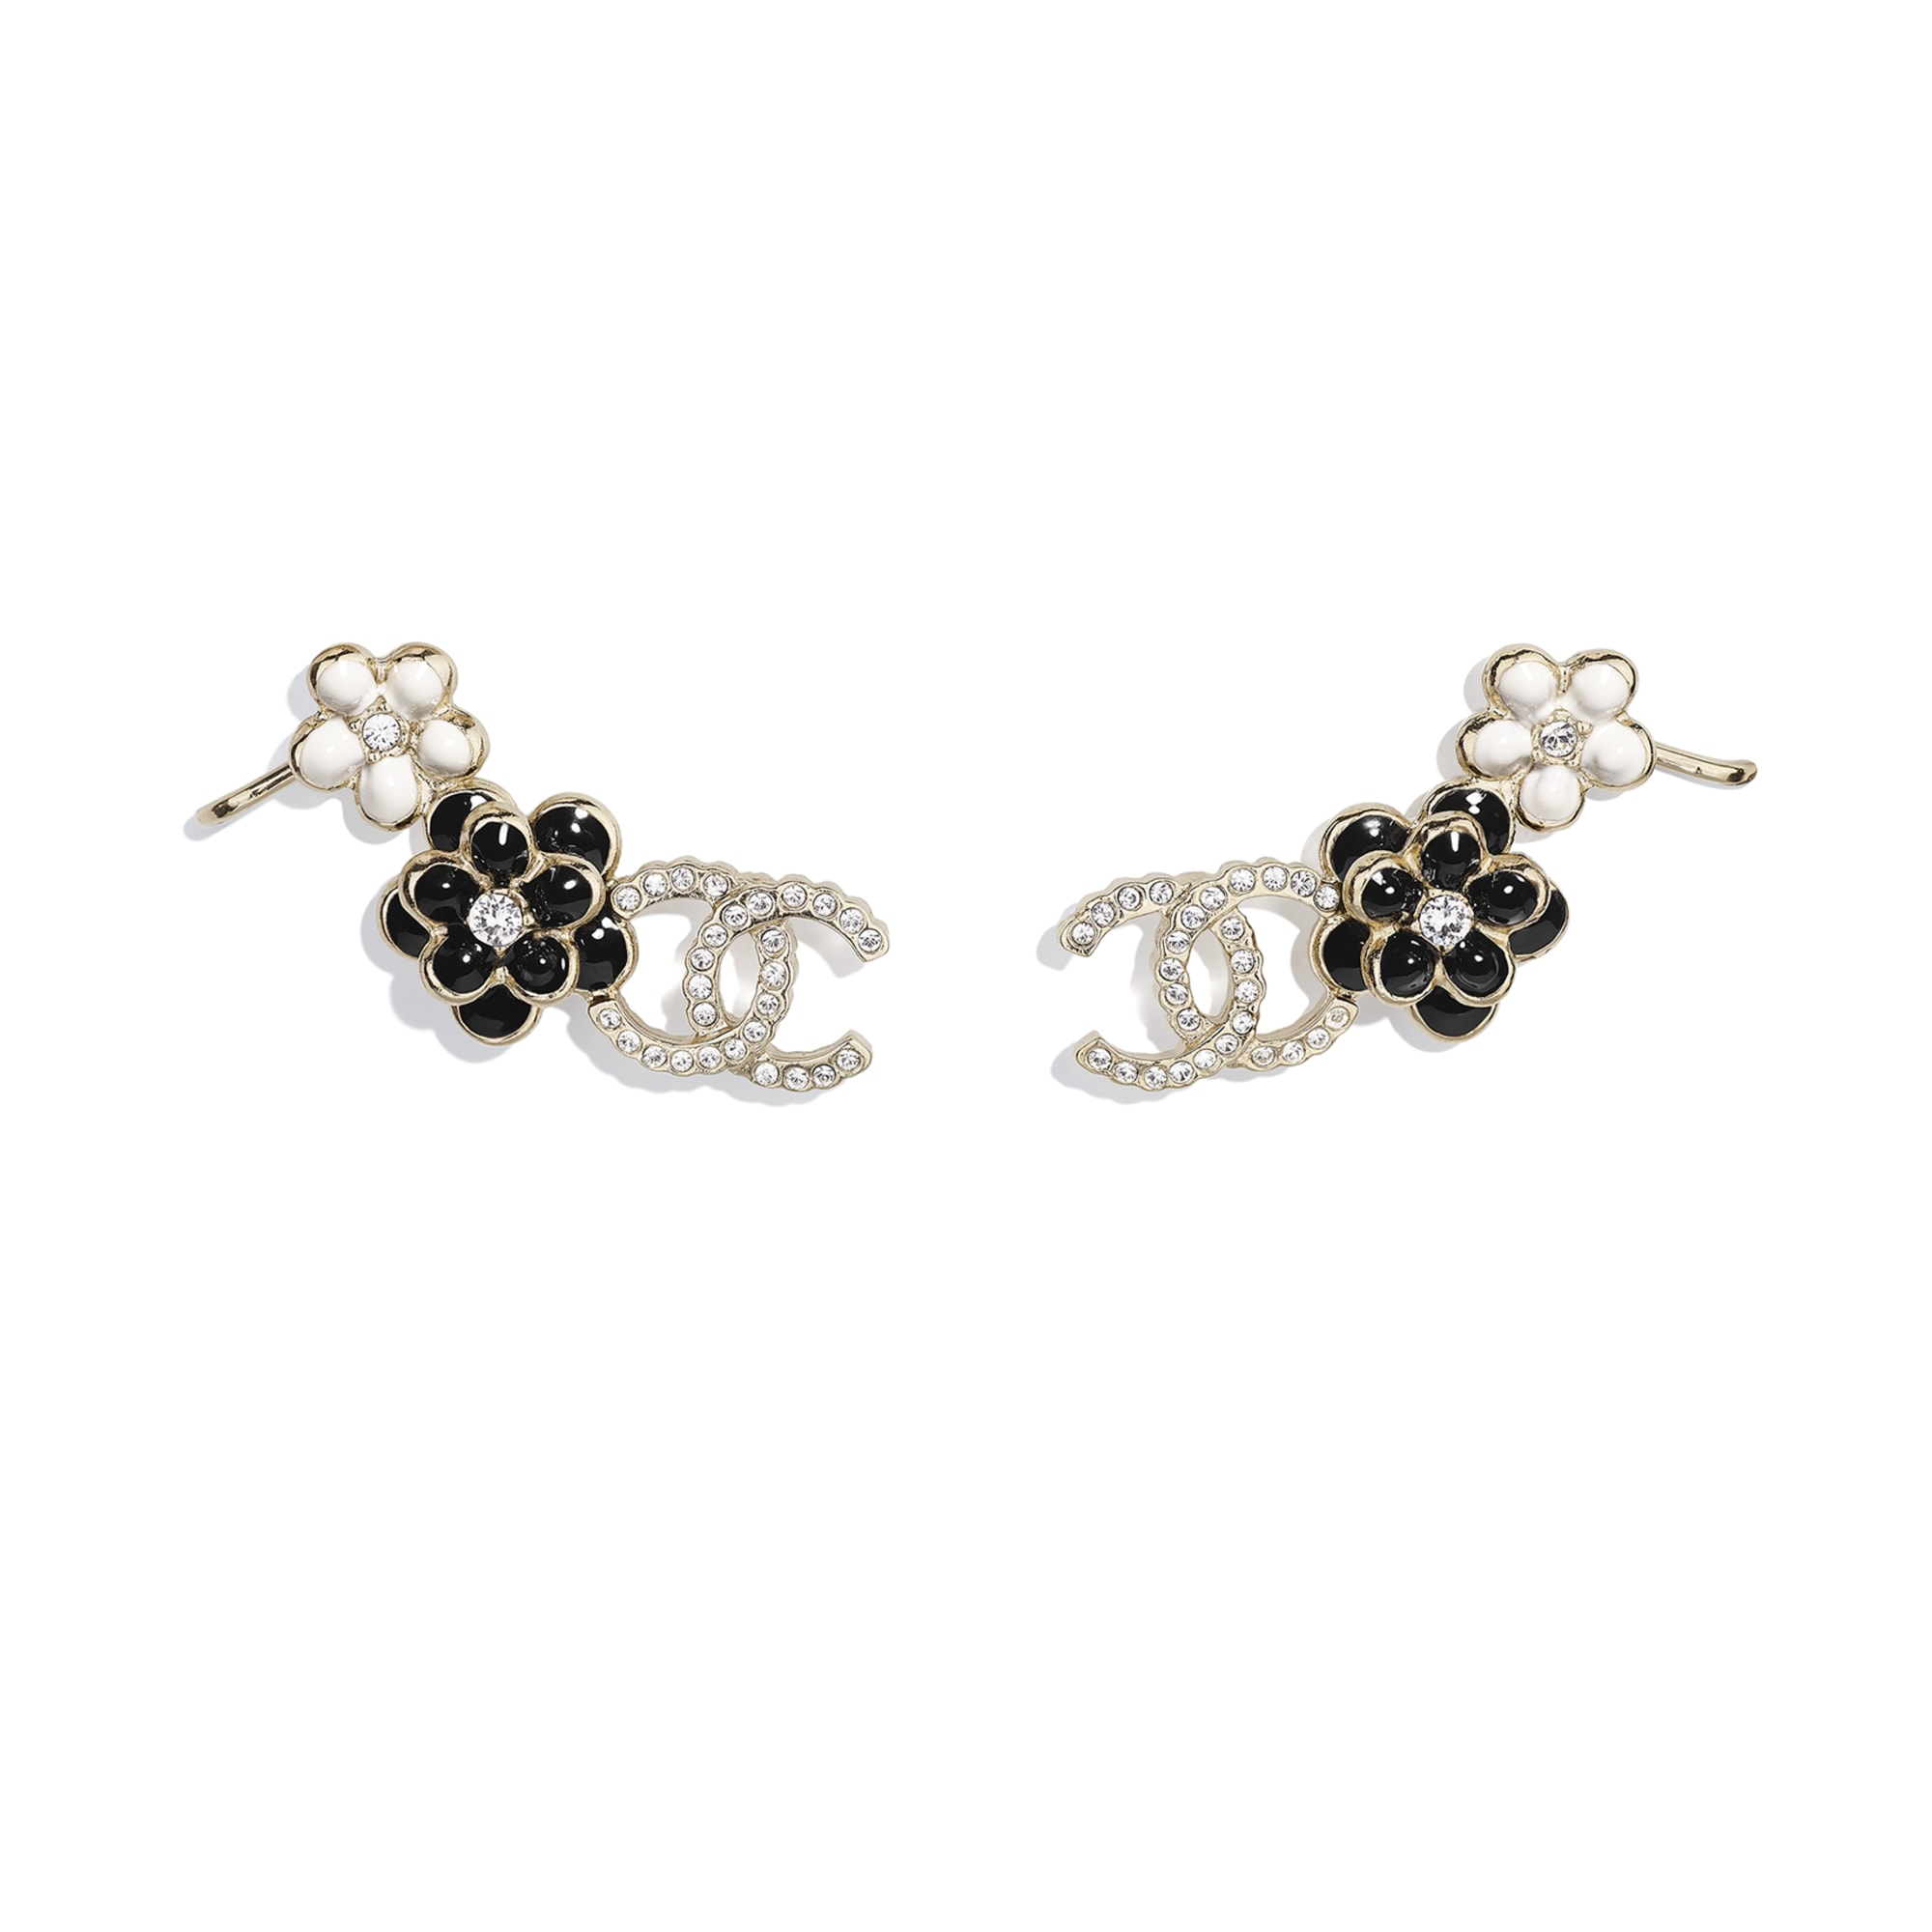 Earrings - Gold, Crystal, Black & White - Metal, Diamantés & Resin - CHANEL - Default view - see standard sized version